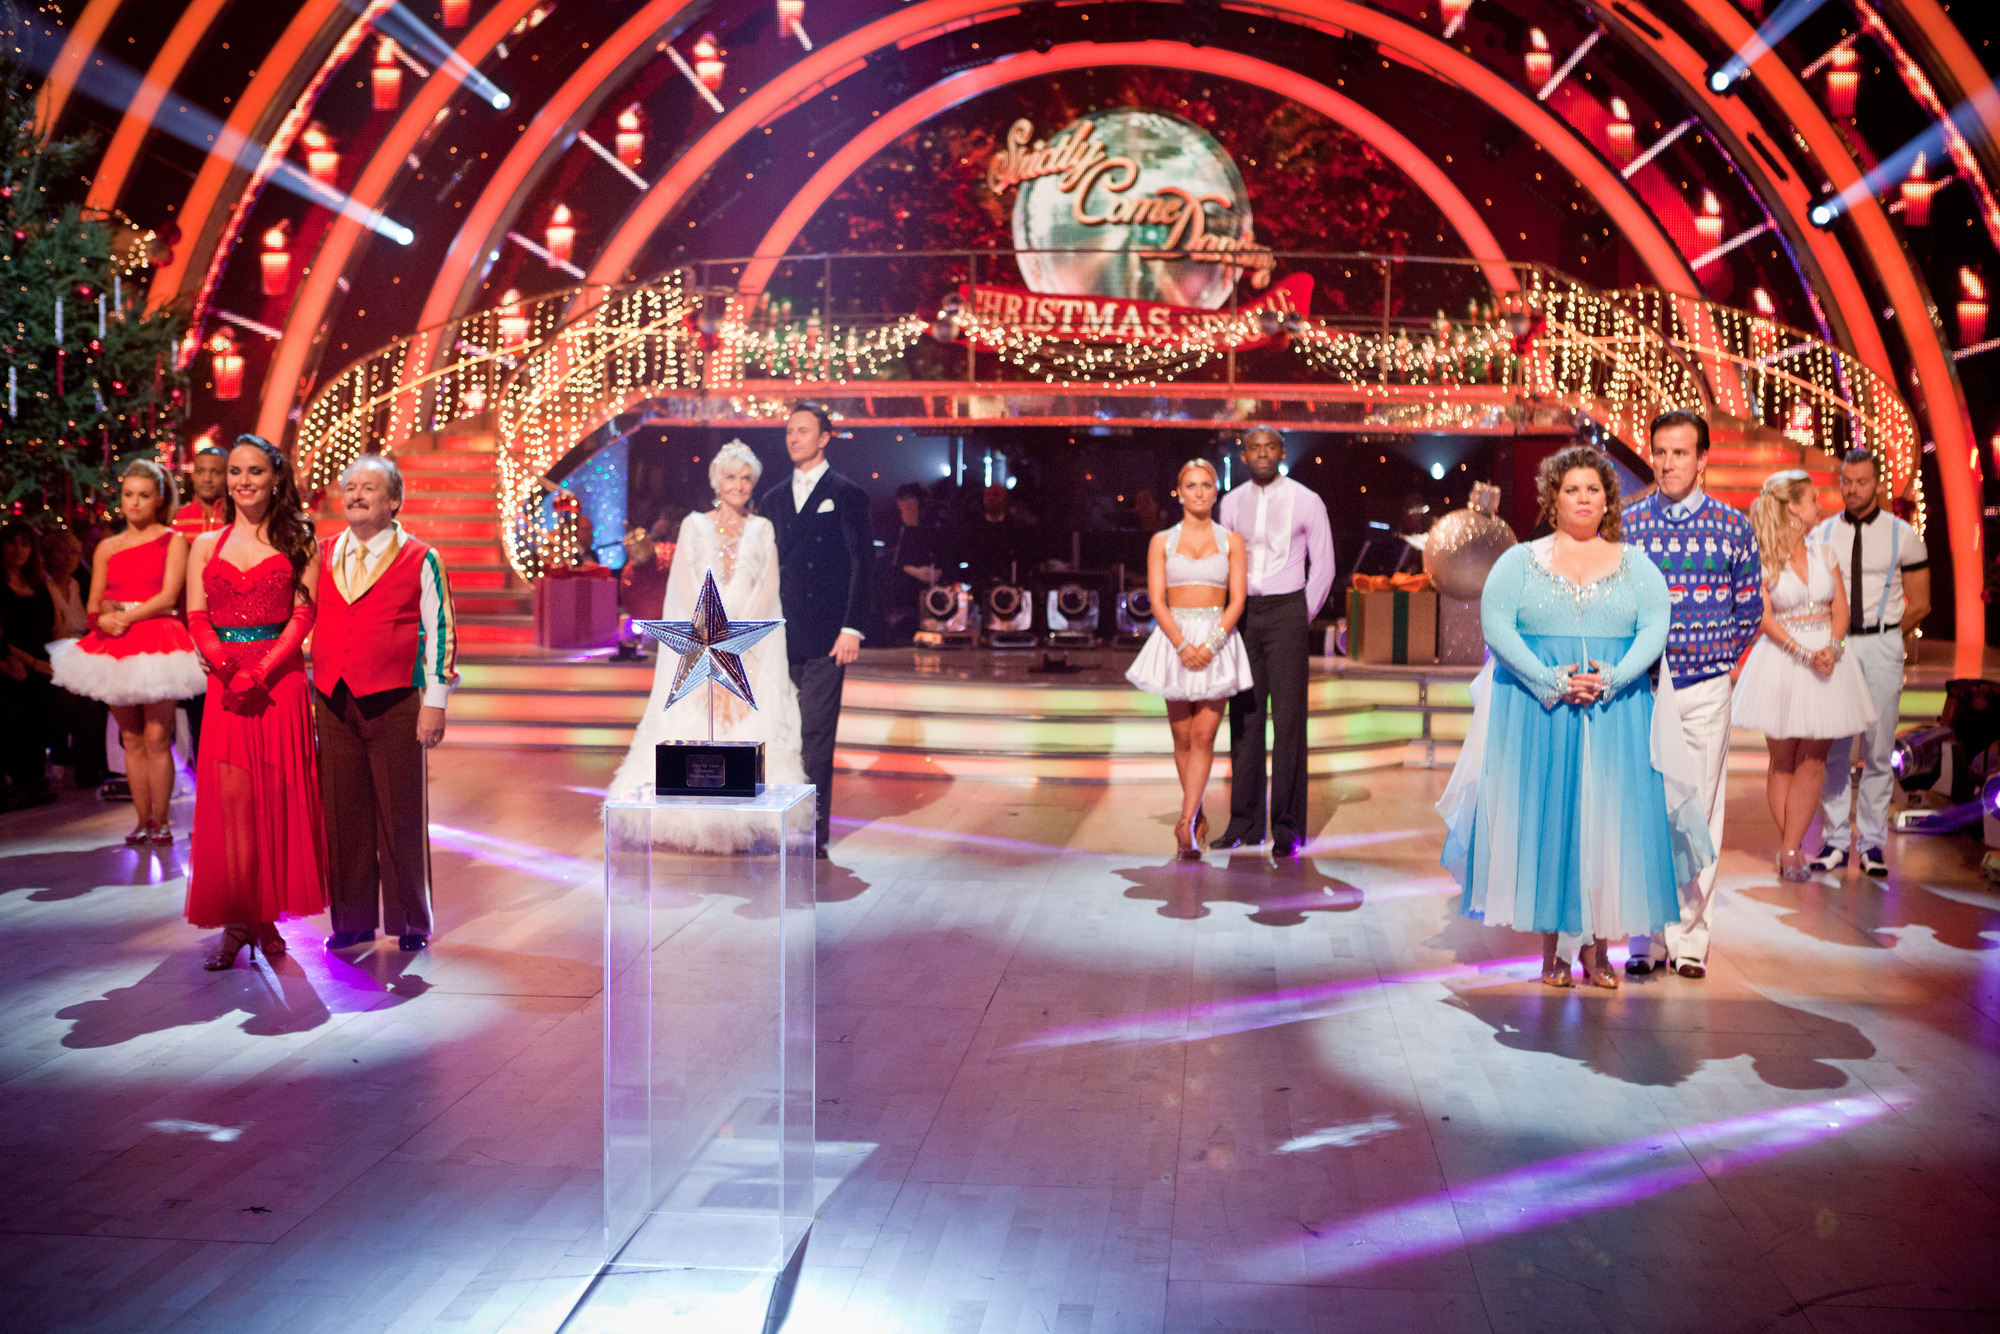 The contestants and dancers of Strictly Come Dancing 2012 Christmas Special.  - (C) BBC - Photographer: Guy Levy